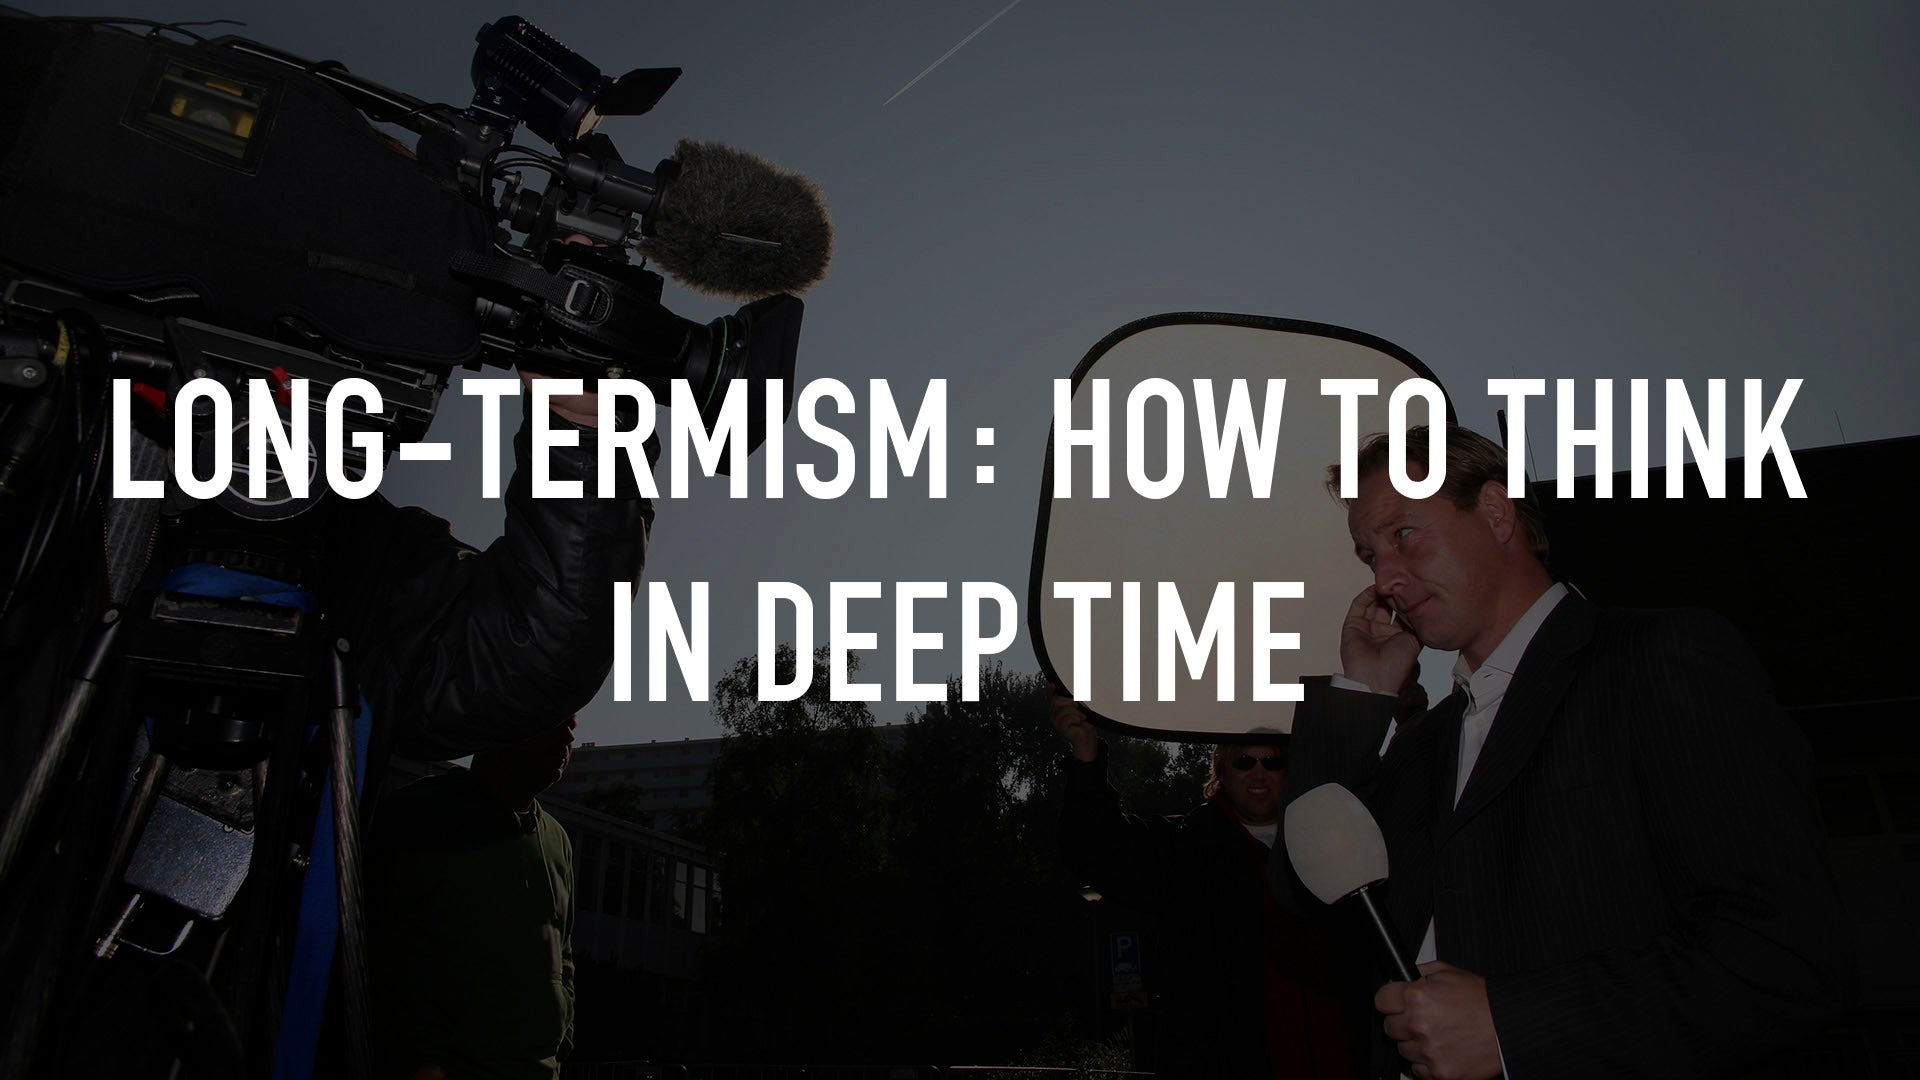 Long-Termism: How To Think In Deep Time